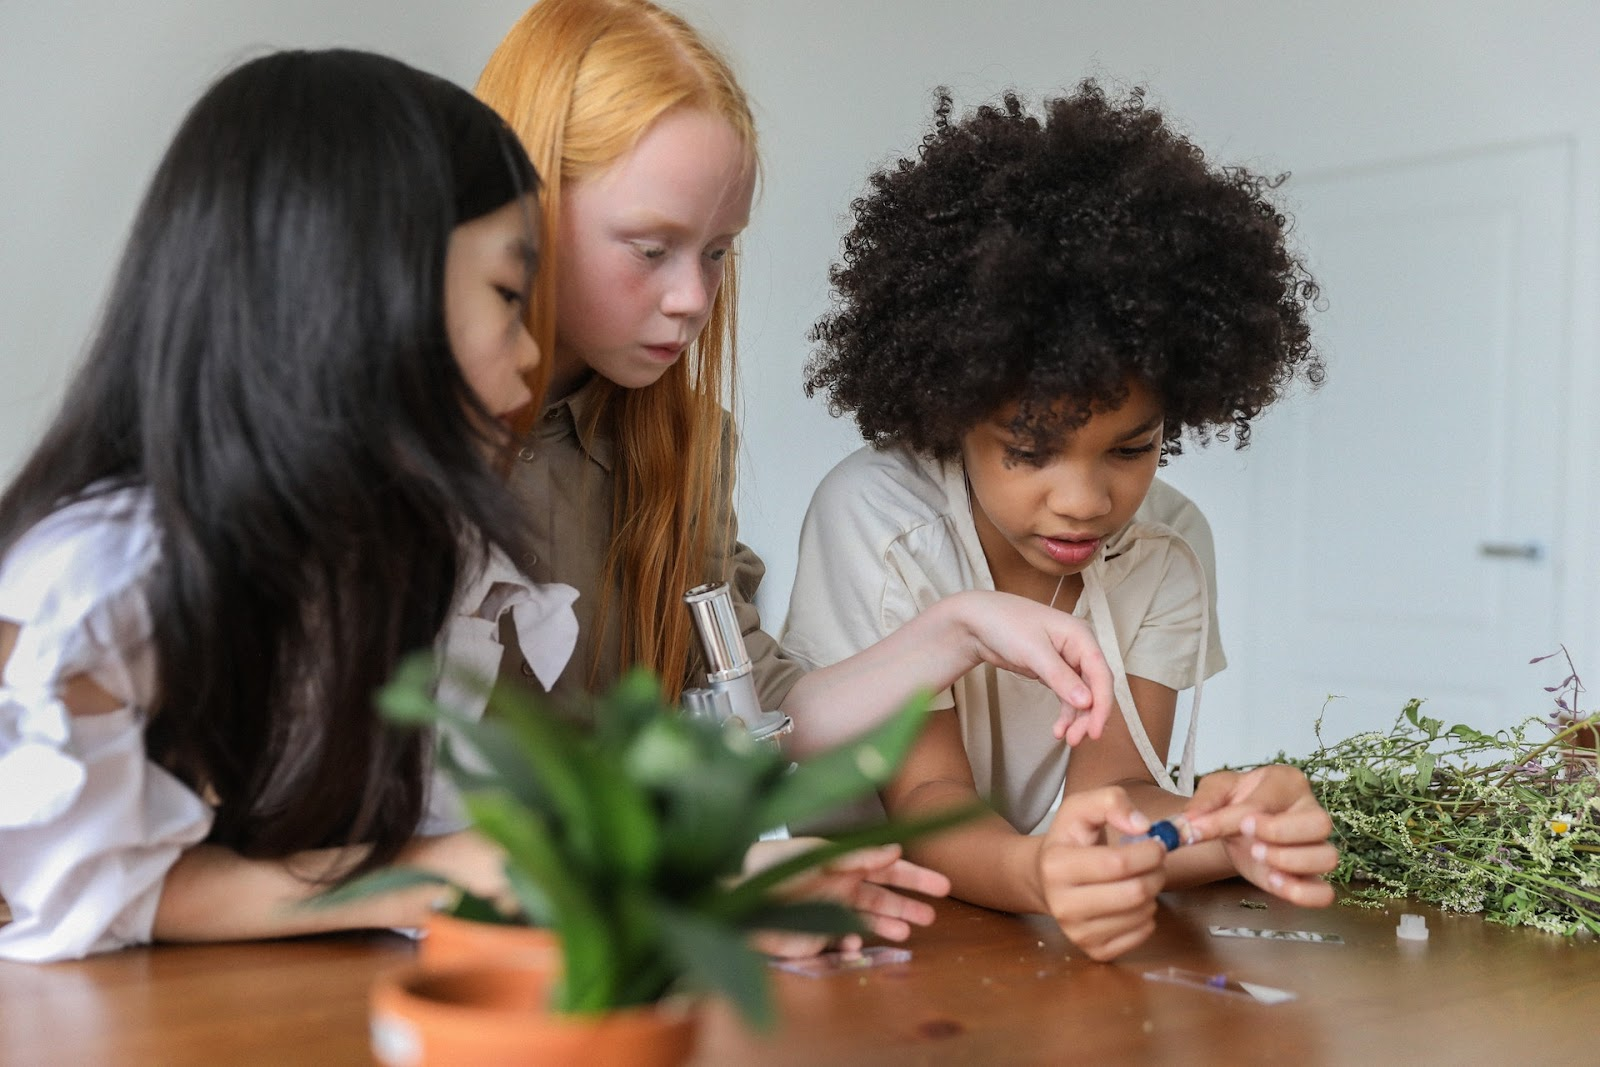 Three young girls have a microscope and seem to be investigating plant life at a table.